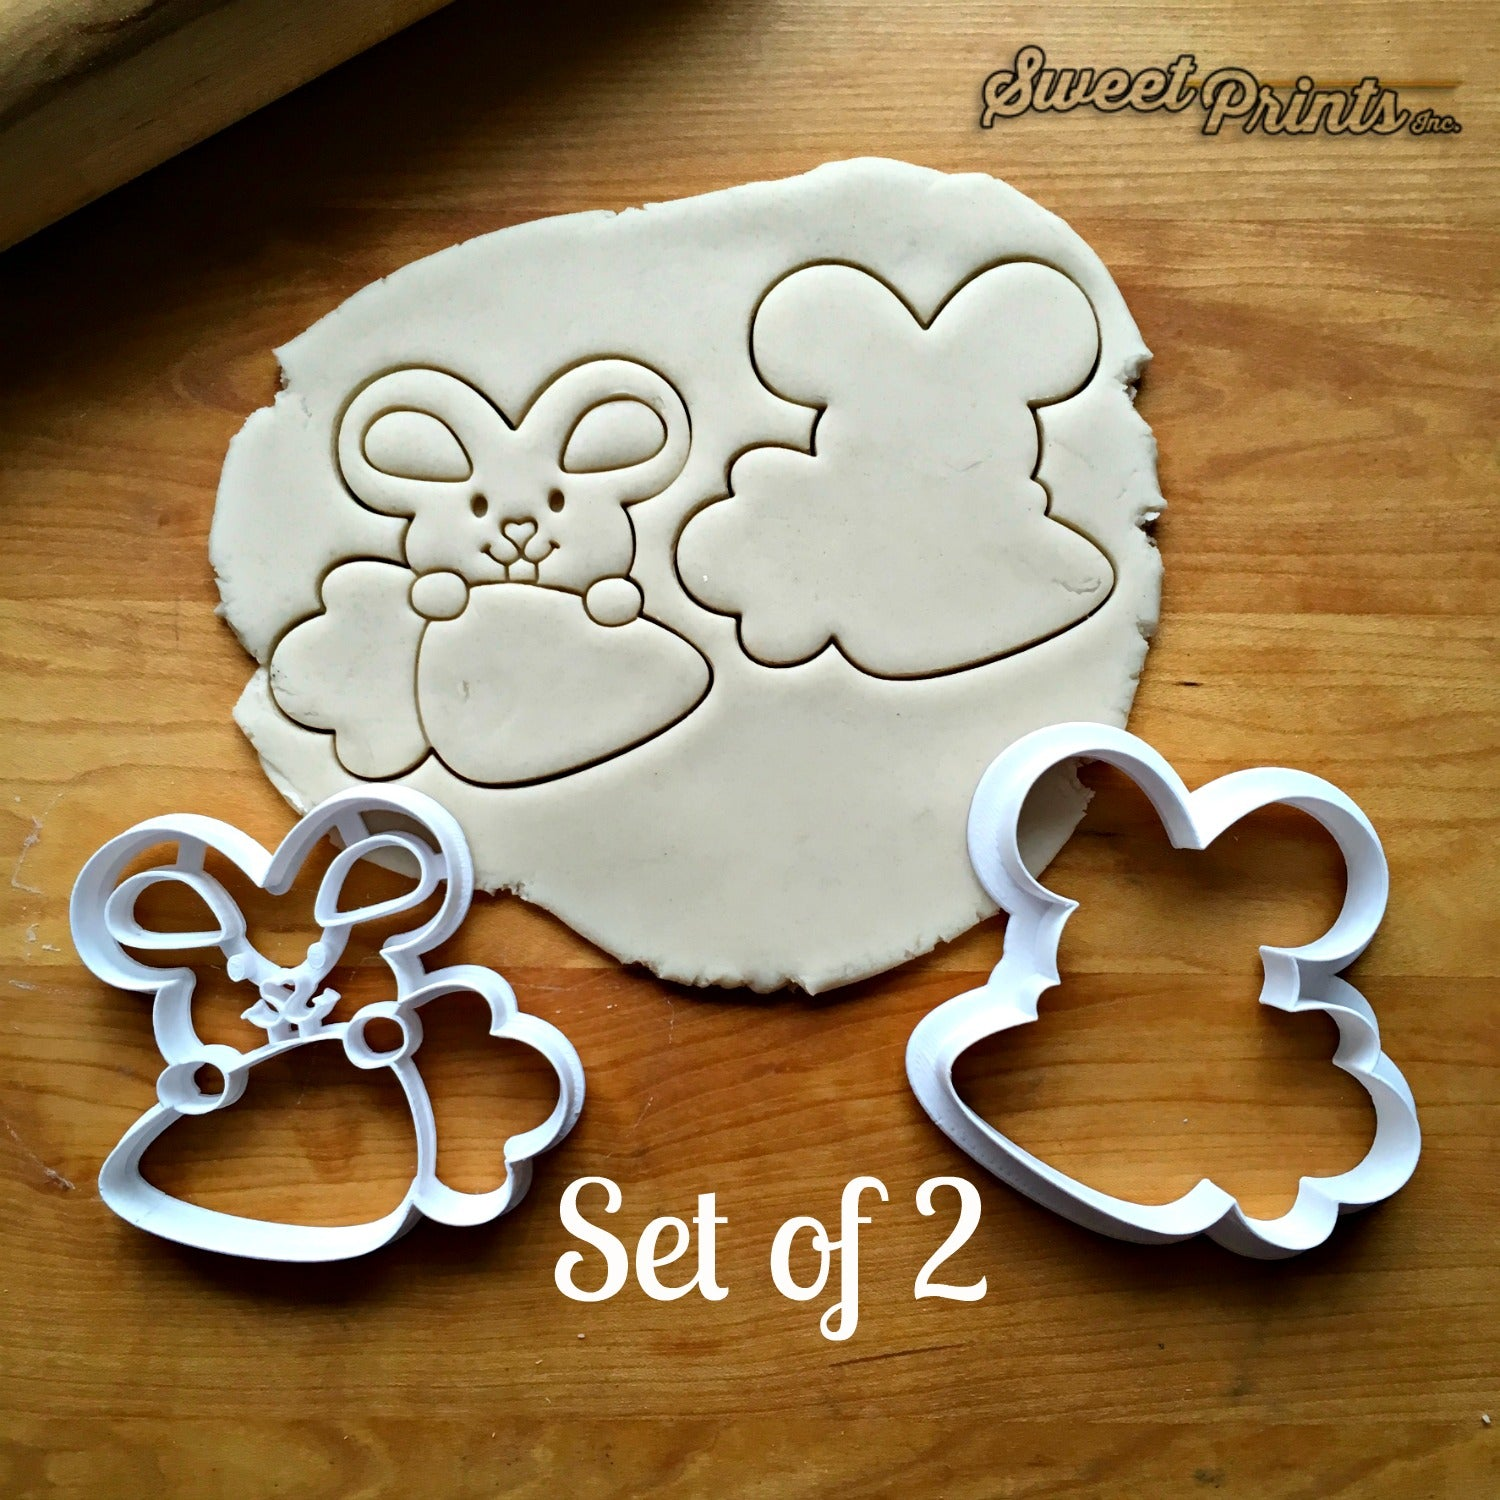 Set of 2 Bunny and Carrot Frame Cookie Cutters/Dishwasher Safe